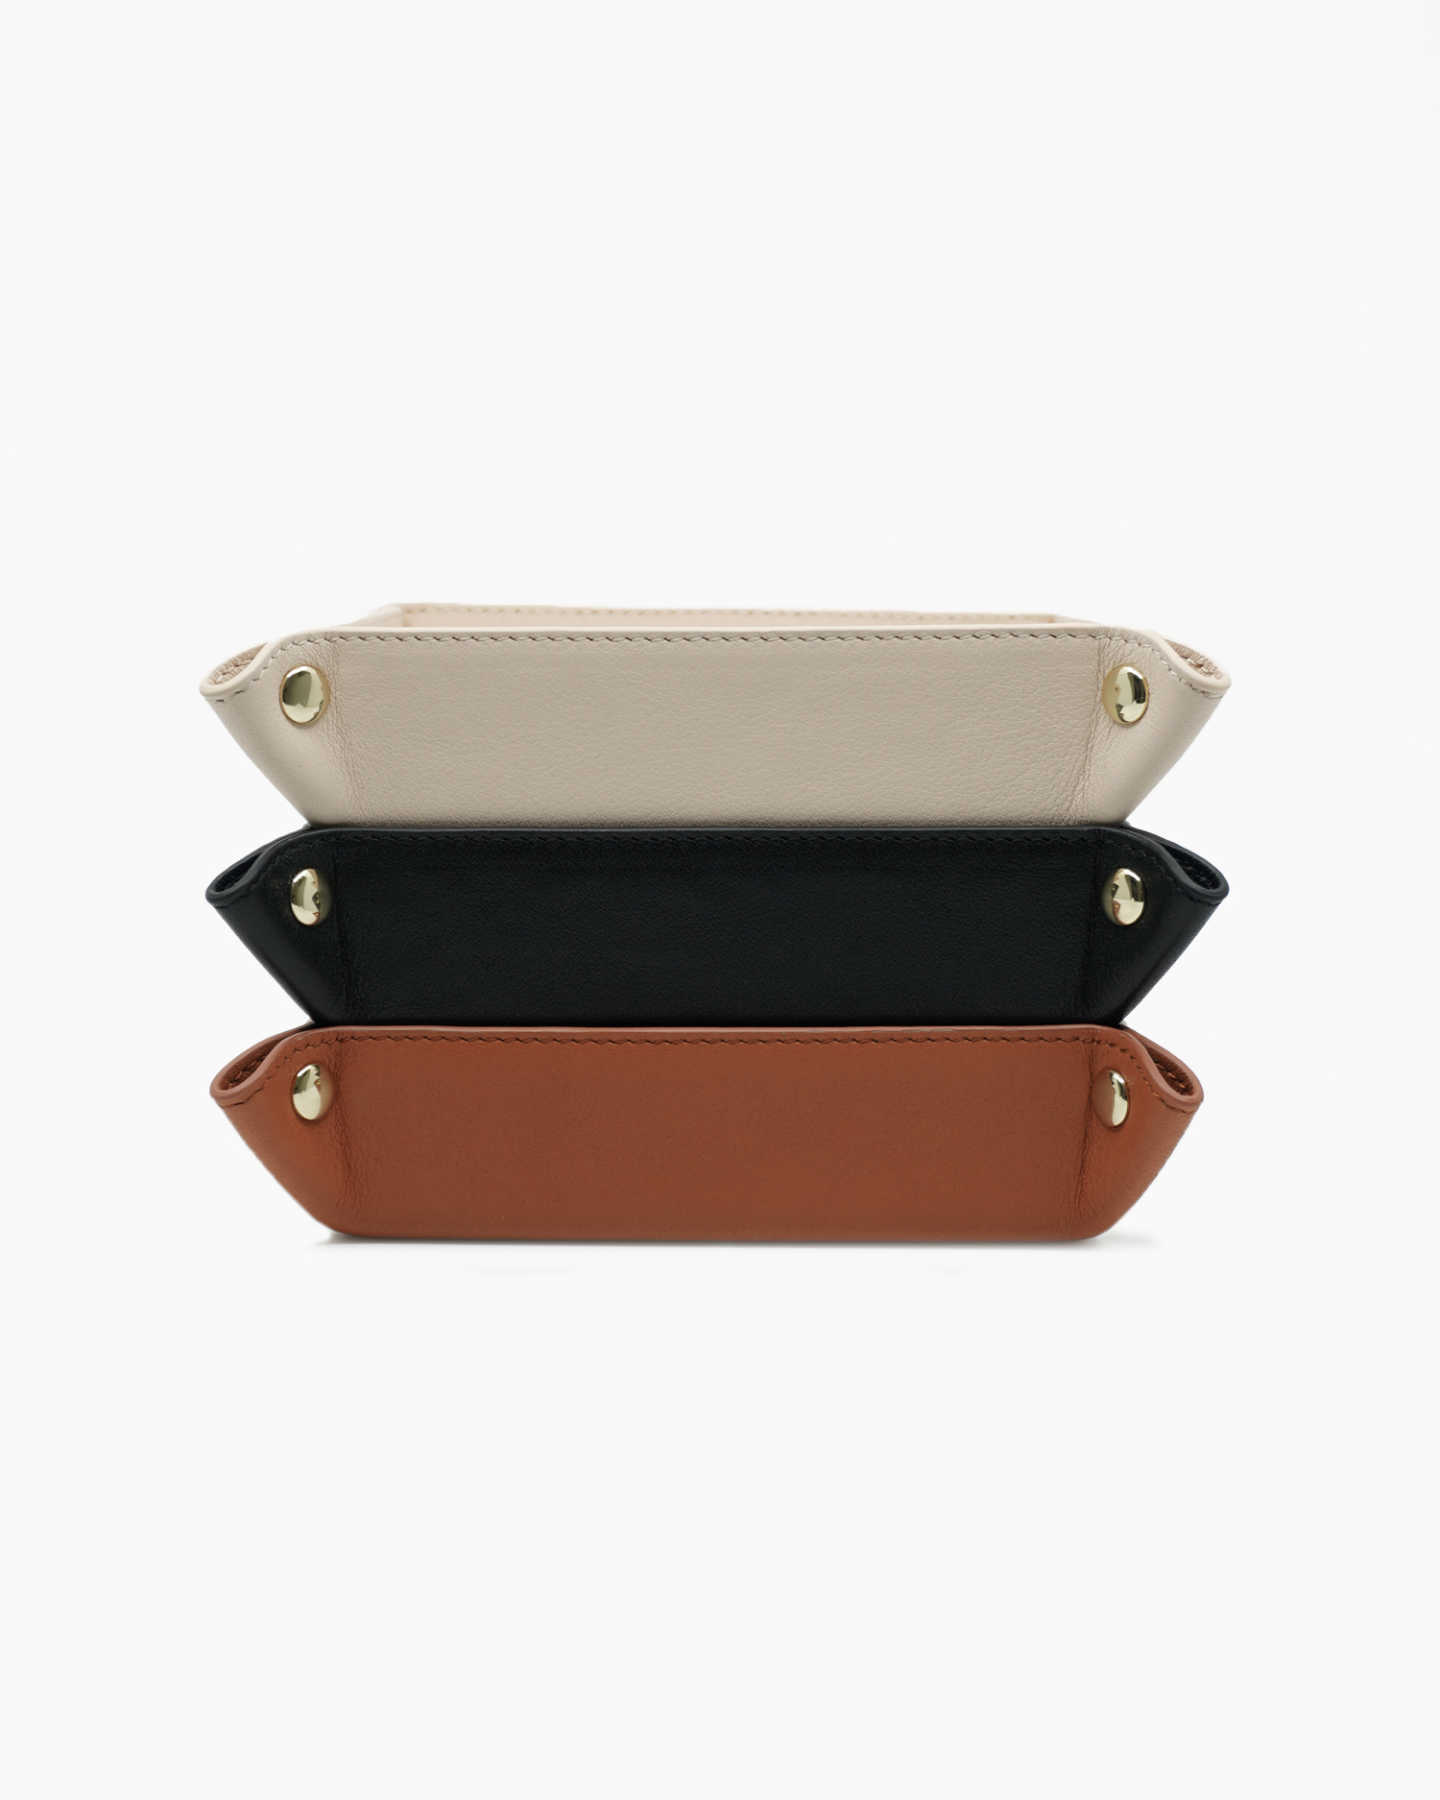 Luxe Full-Grain Leather Valet Tray - Soft Blush - 2